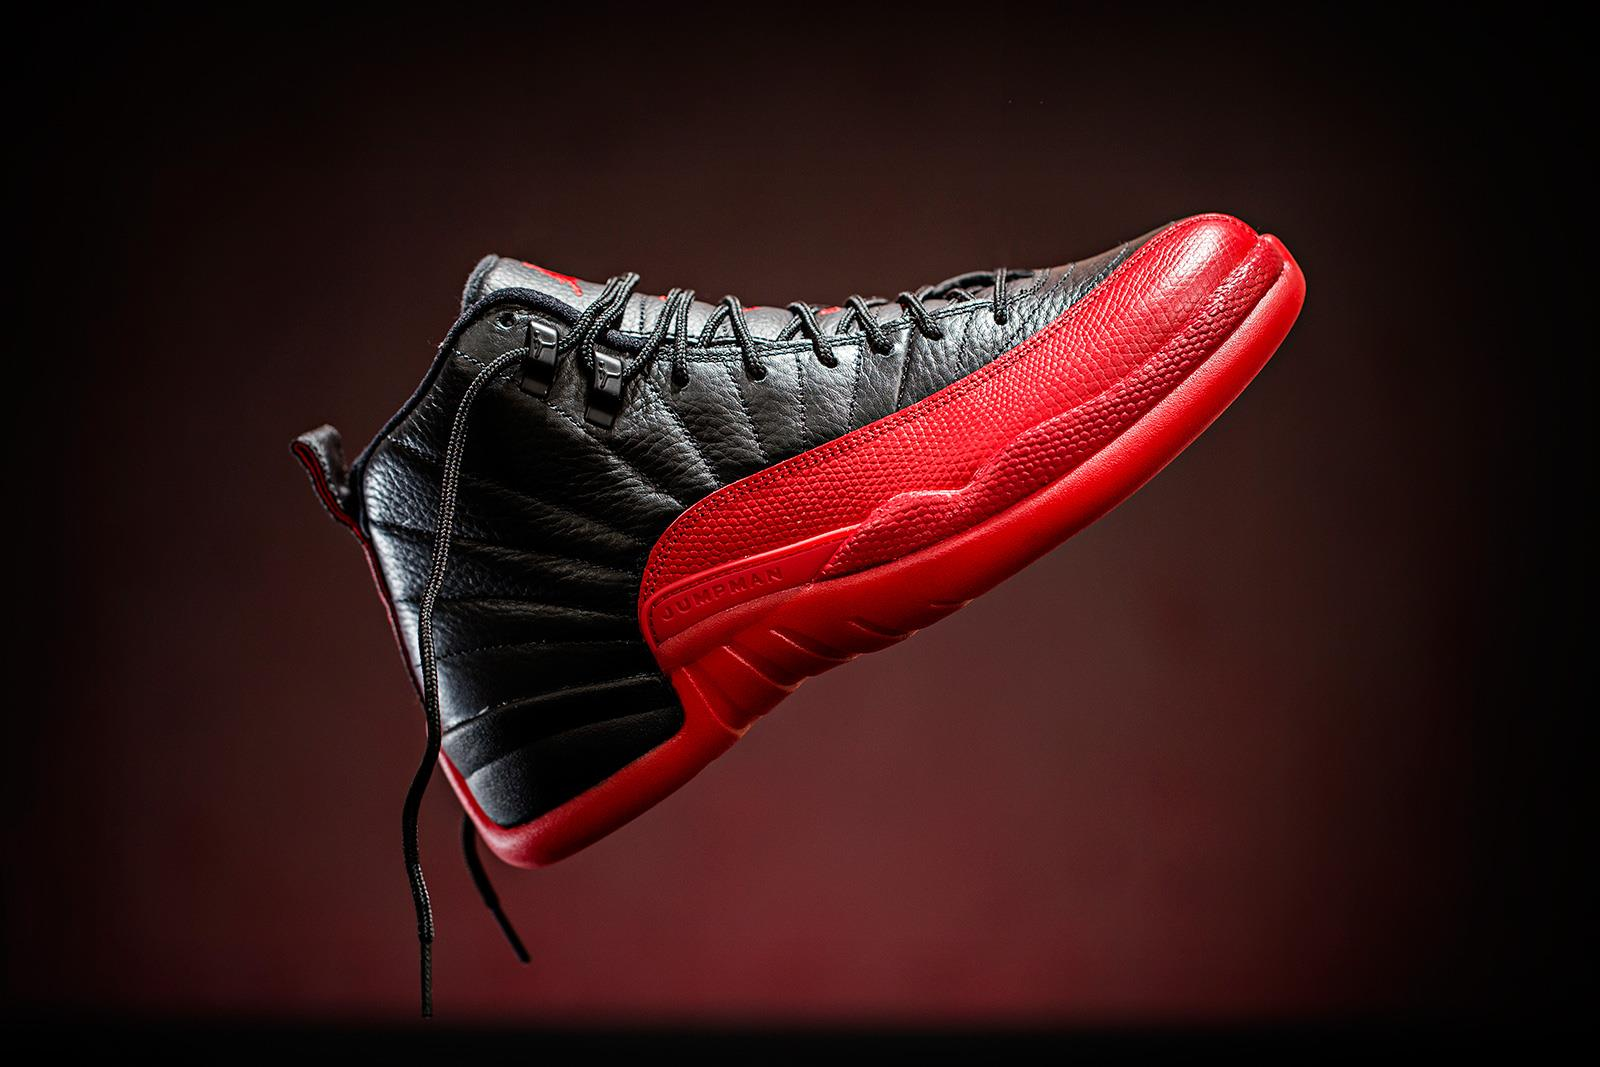 3dc217ec7abb32 air jordan retro 12 Flu Game XII Playoff 11 Bred XI